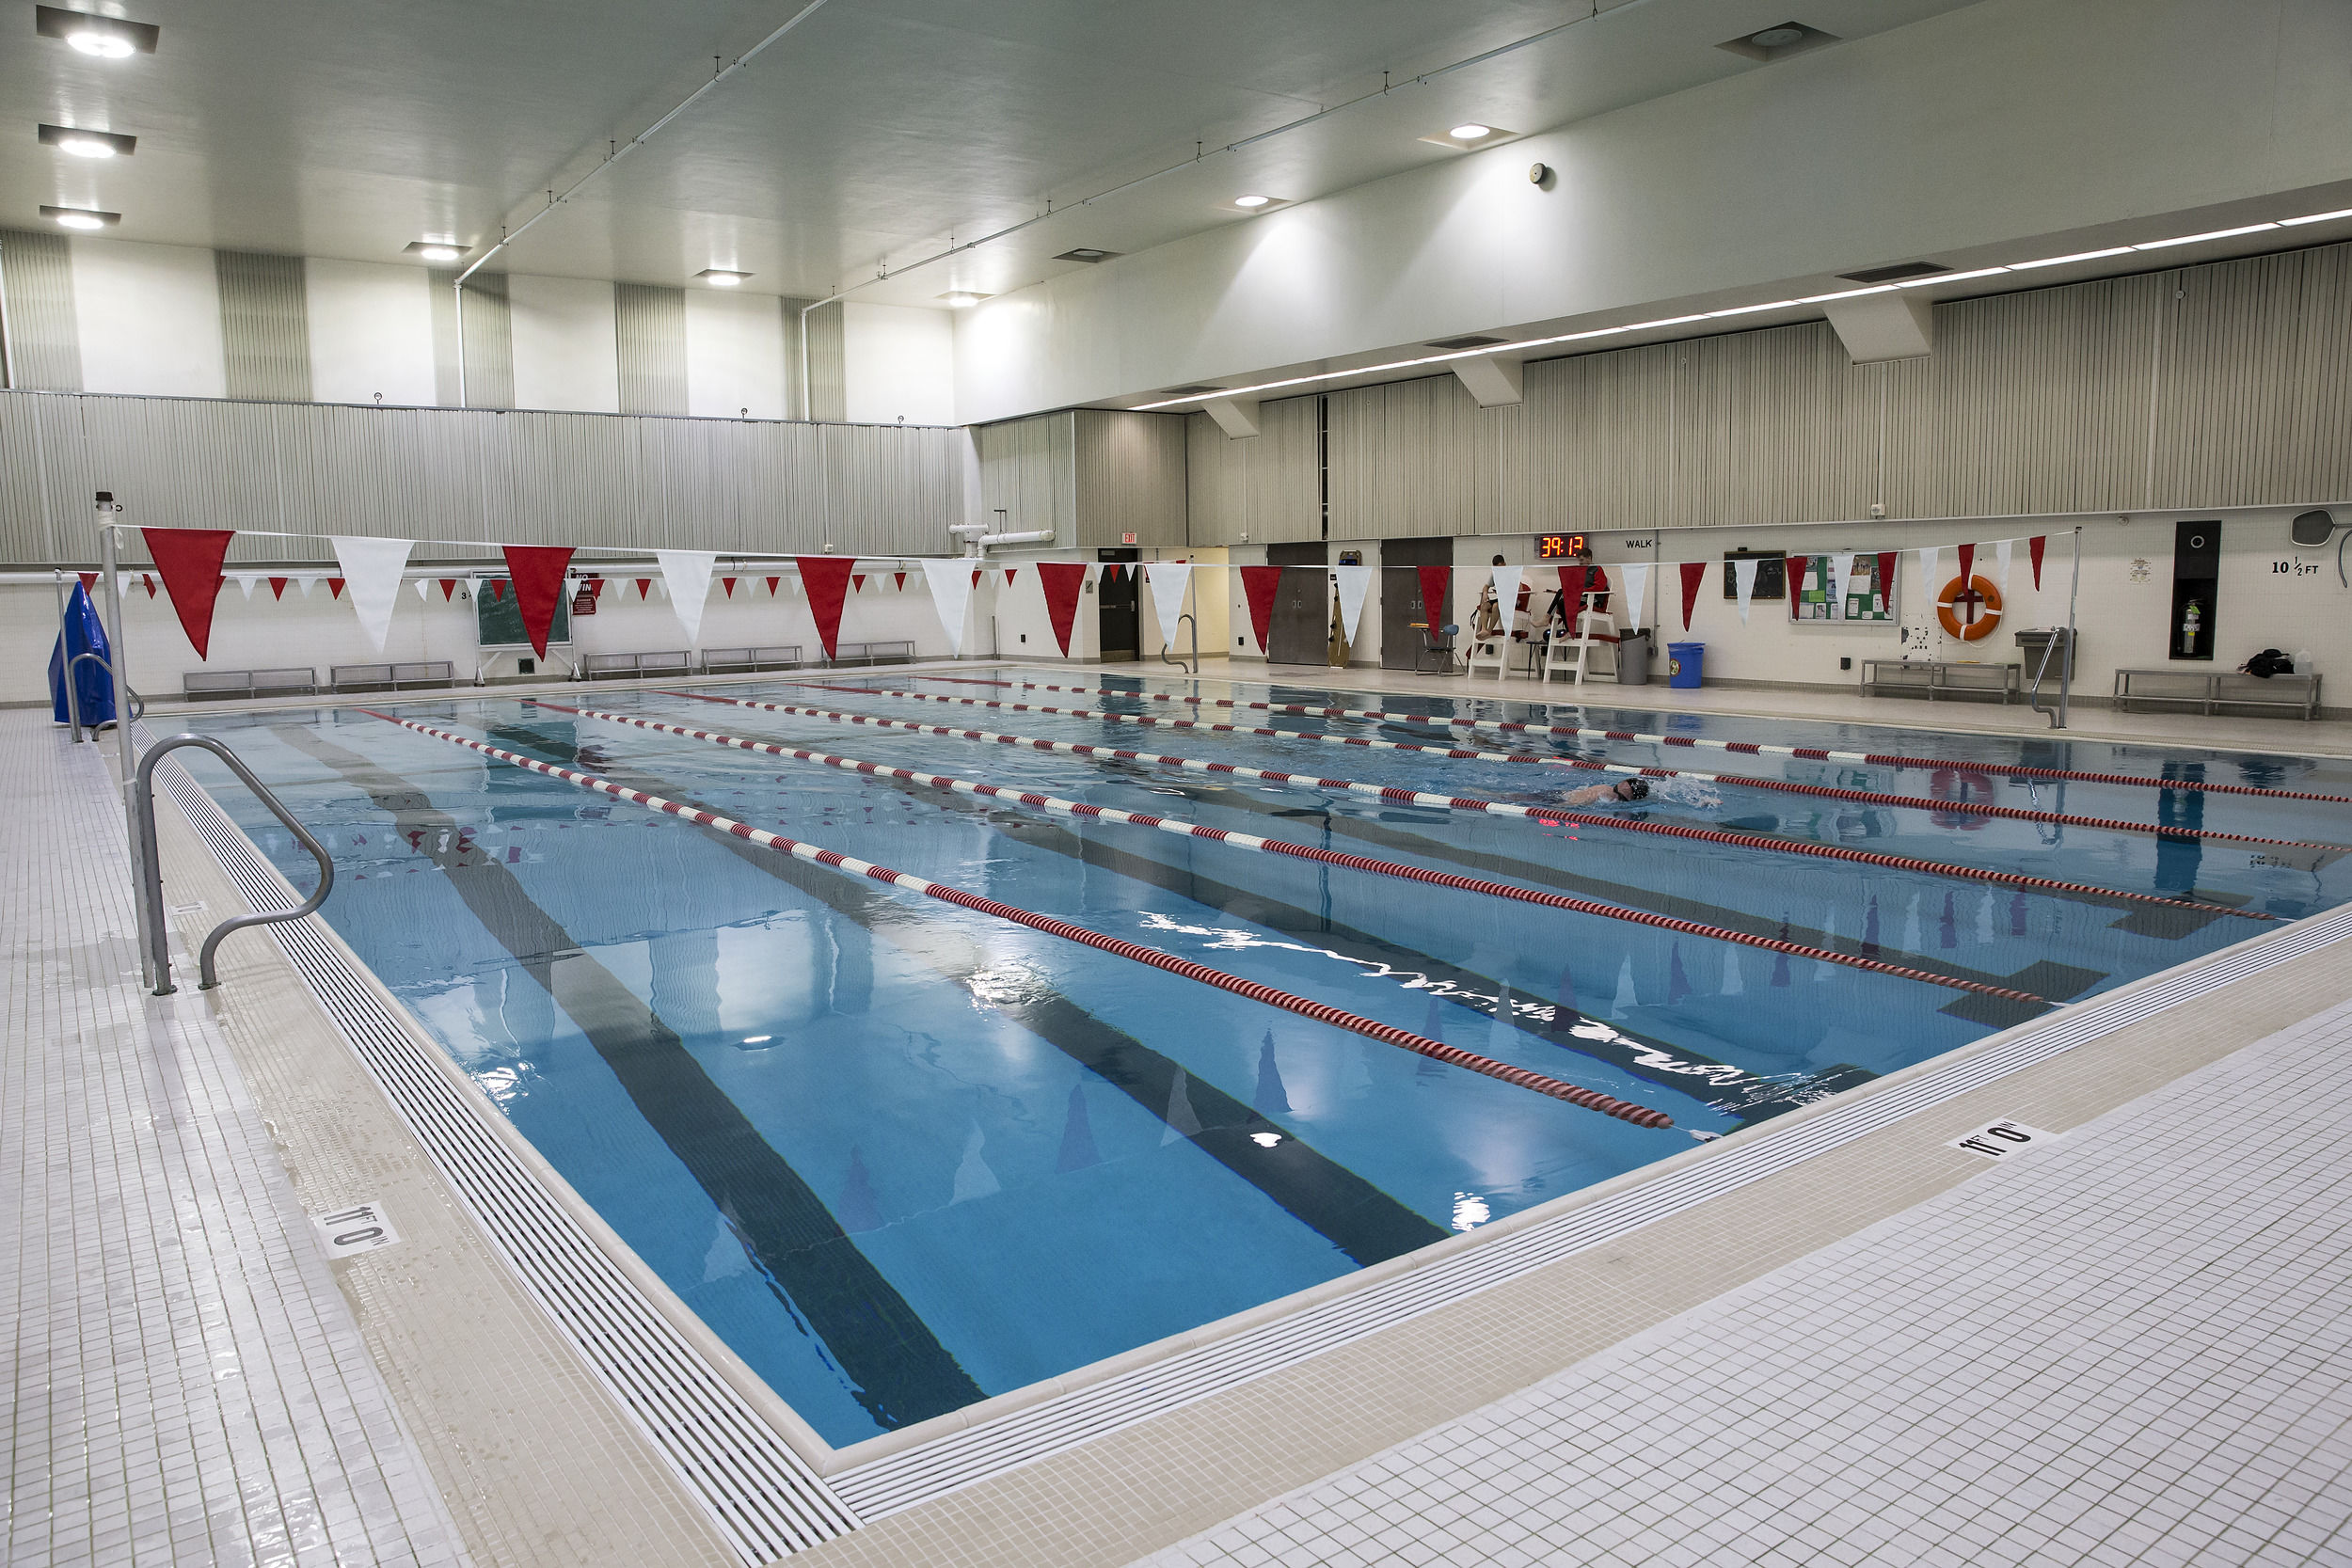 swimming pool in the basement of Pearson and McGonigle Halls.